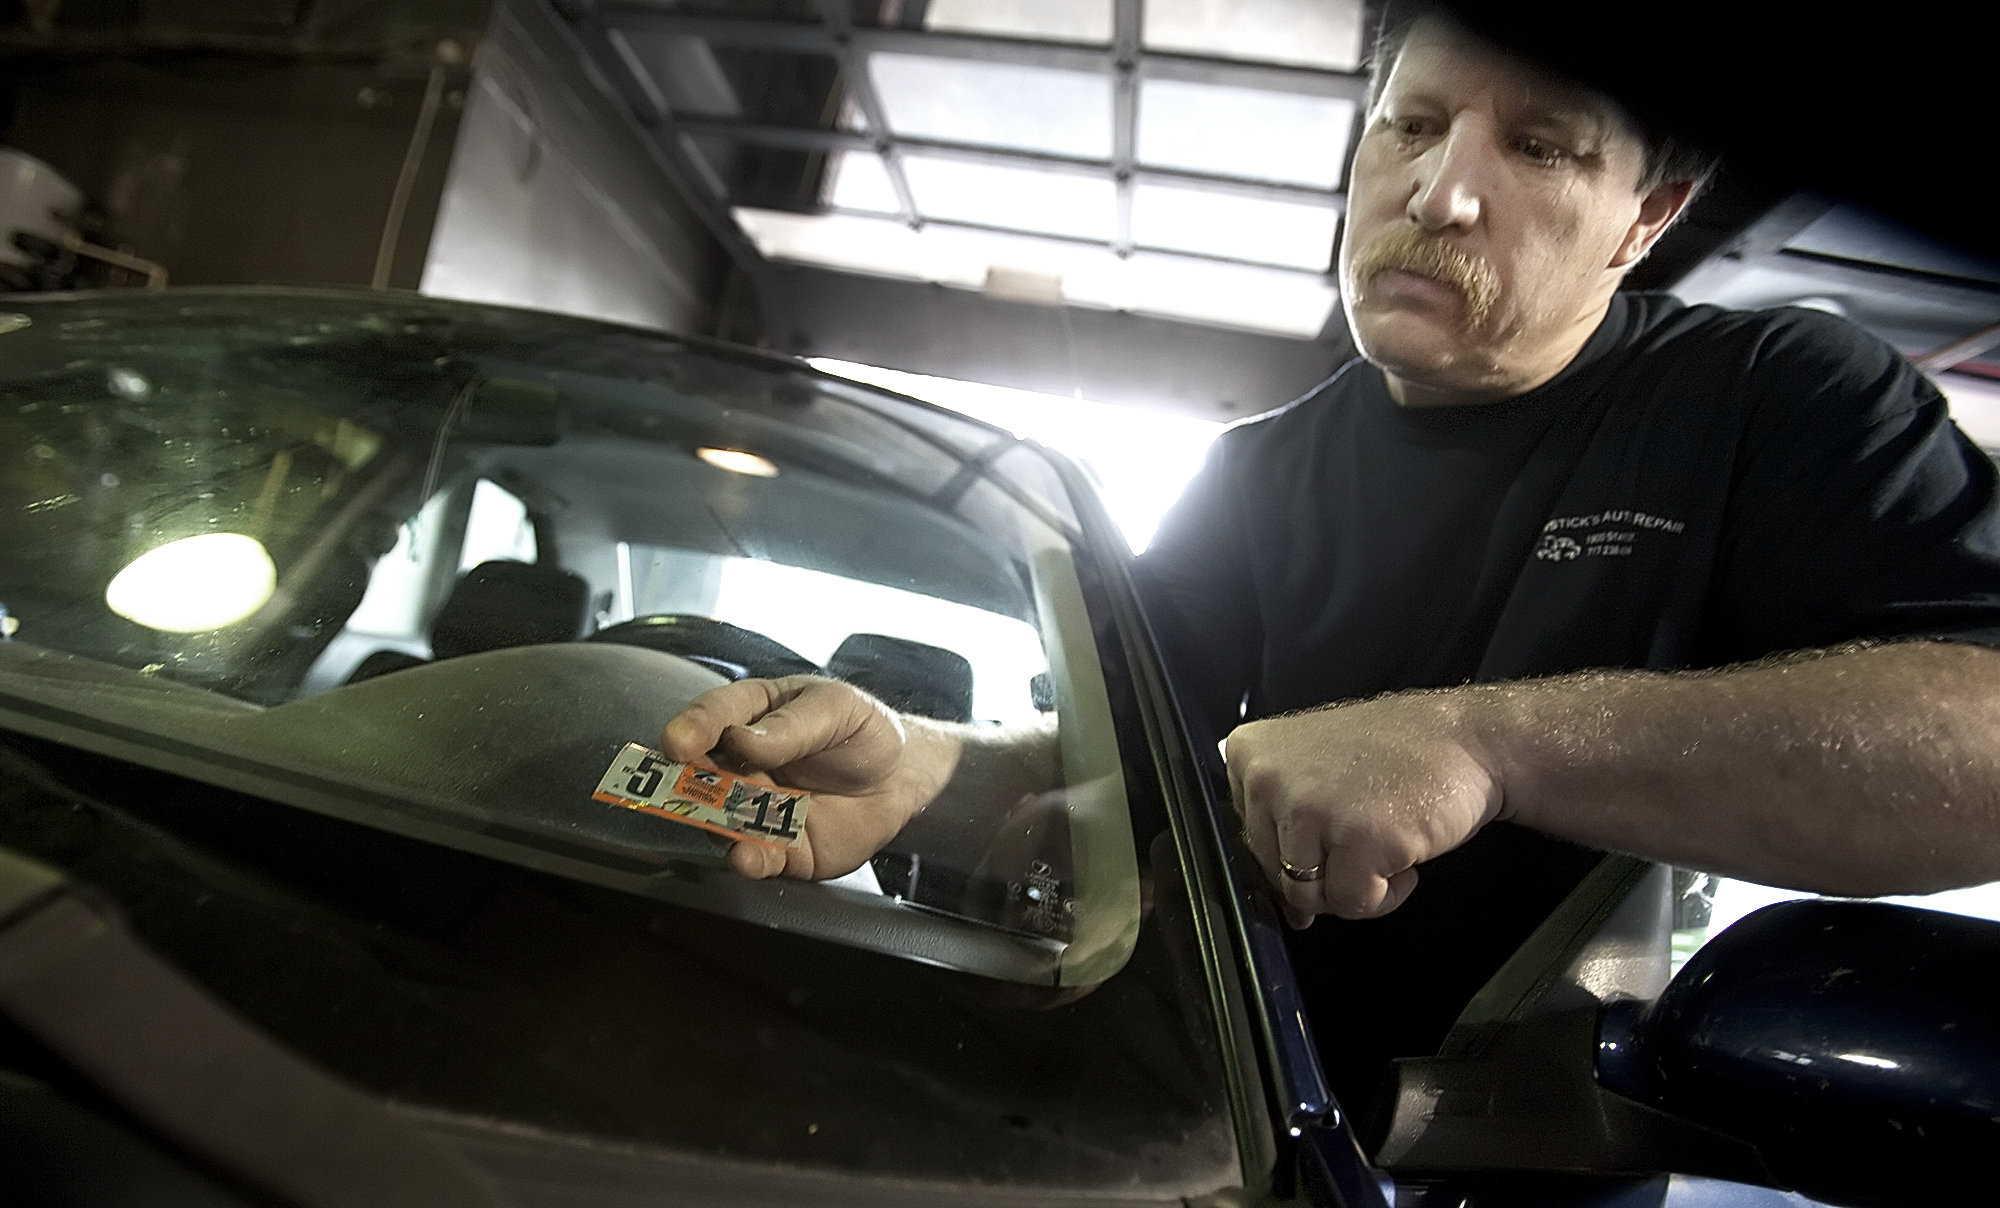 Annual auto emissions inspections could become a thing of the past in Pennsylvania